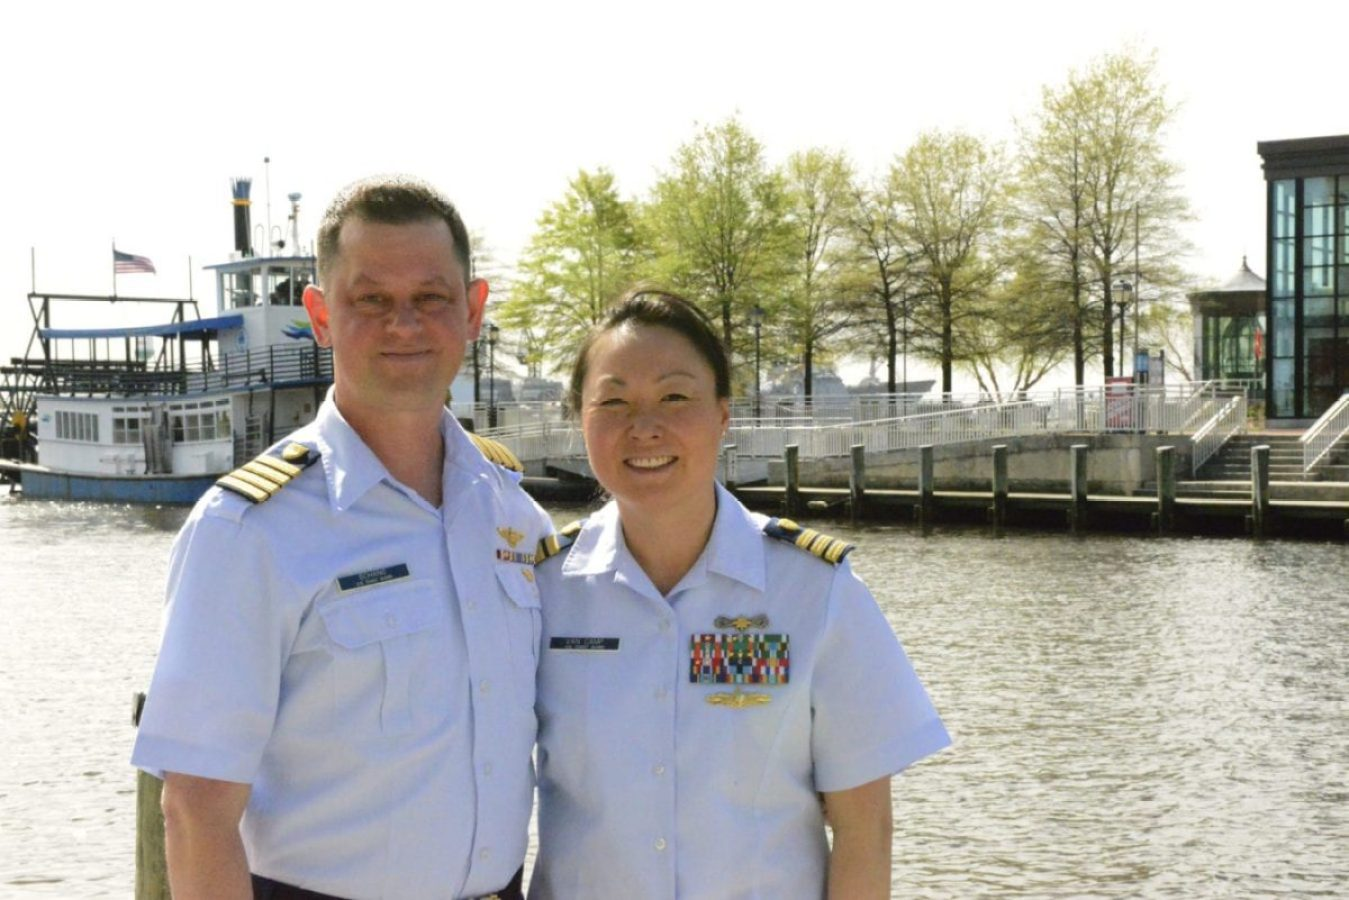 Capt. Timothy Schang and Cmdr. Eva Van Camp are a married couple serving in the U.S. Coast Guard. The Coast Guard is working to better communicate workforce policies and programs to its people, such as its success in co-locating married personnel.